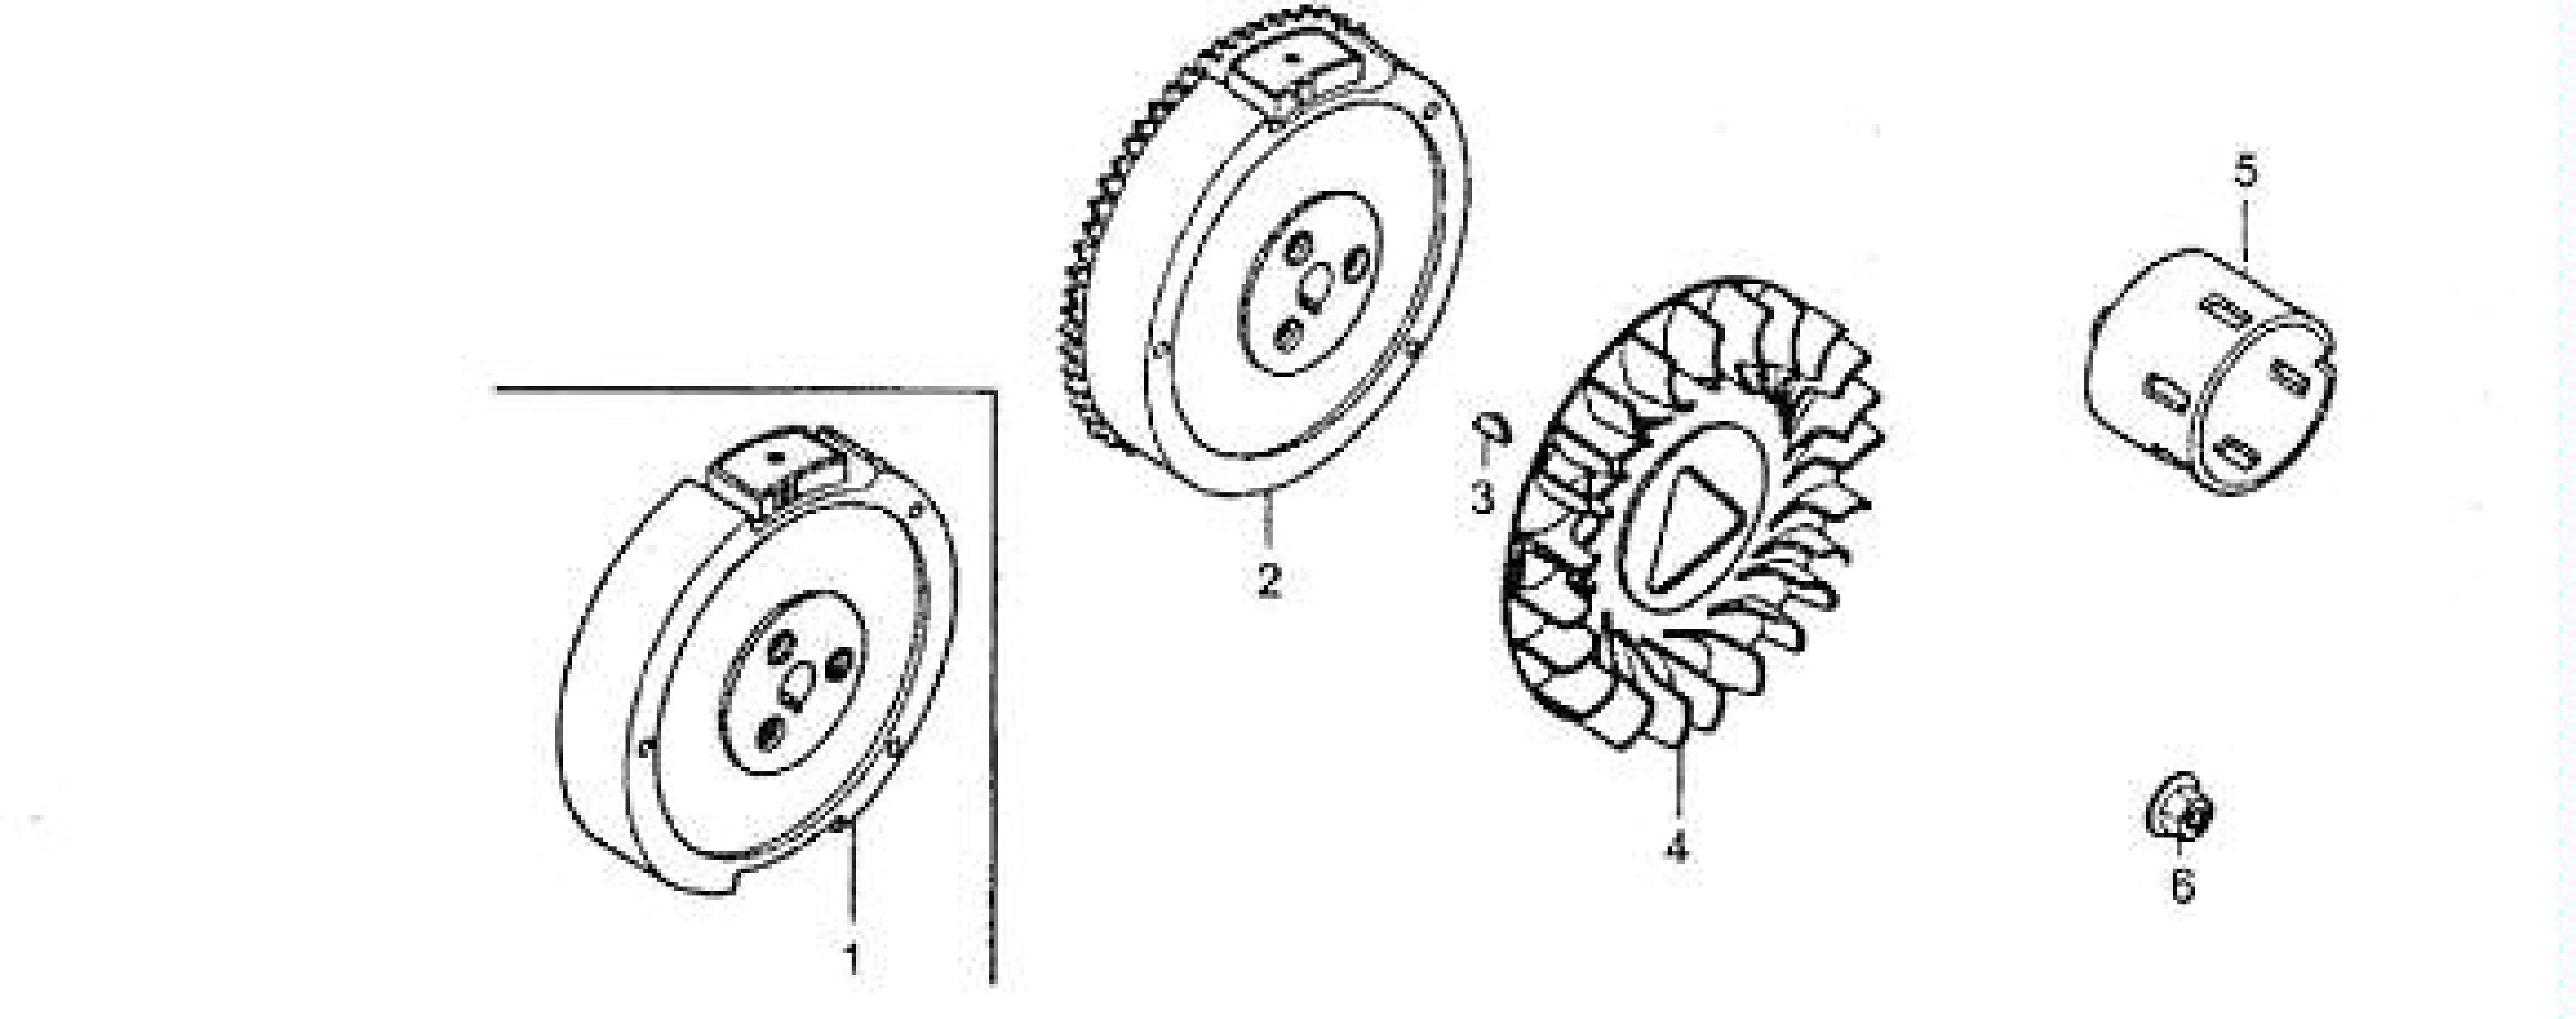 Flywheel System